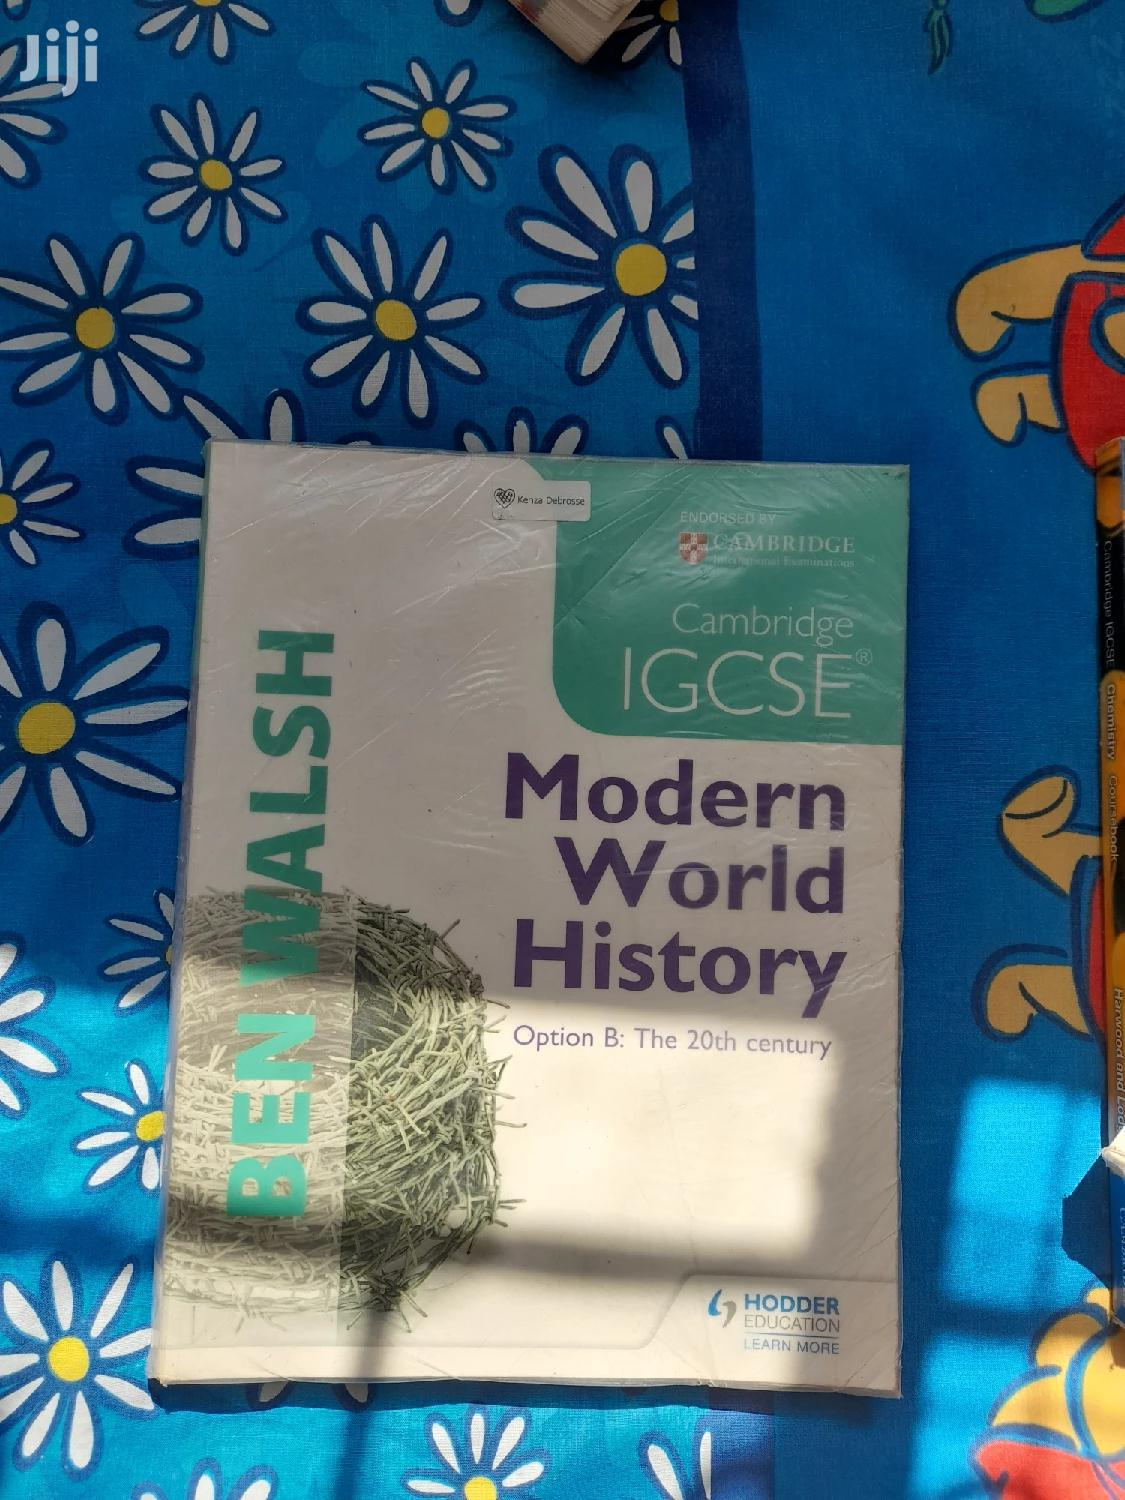 Archive: Moder World History